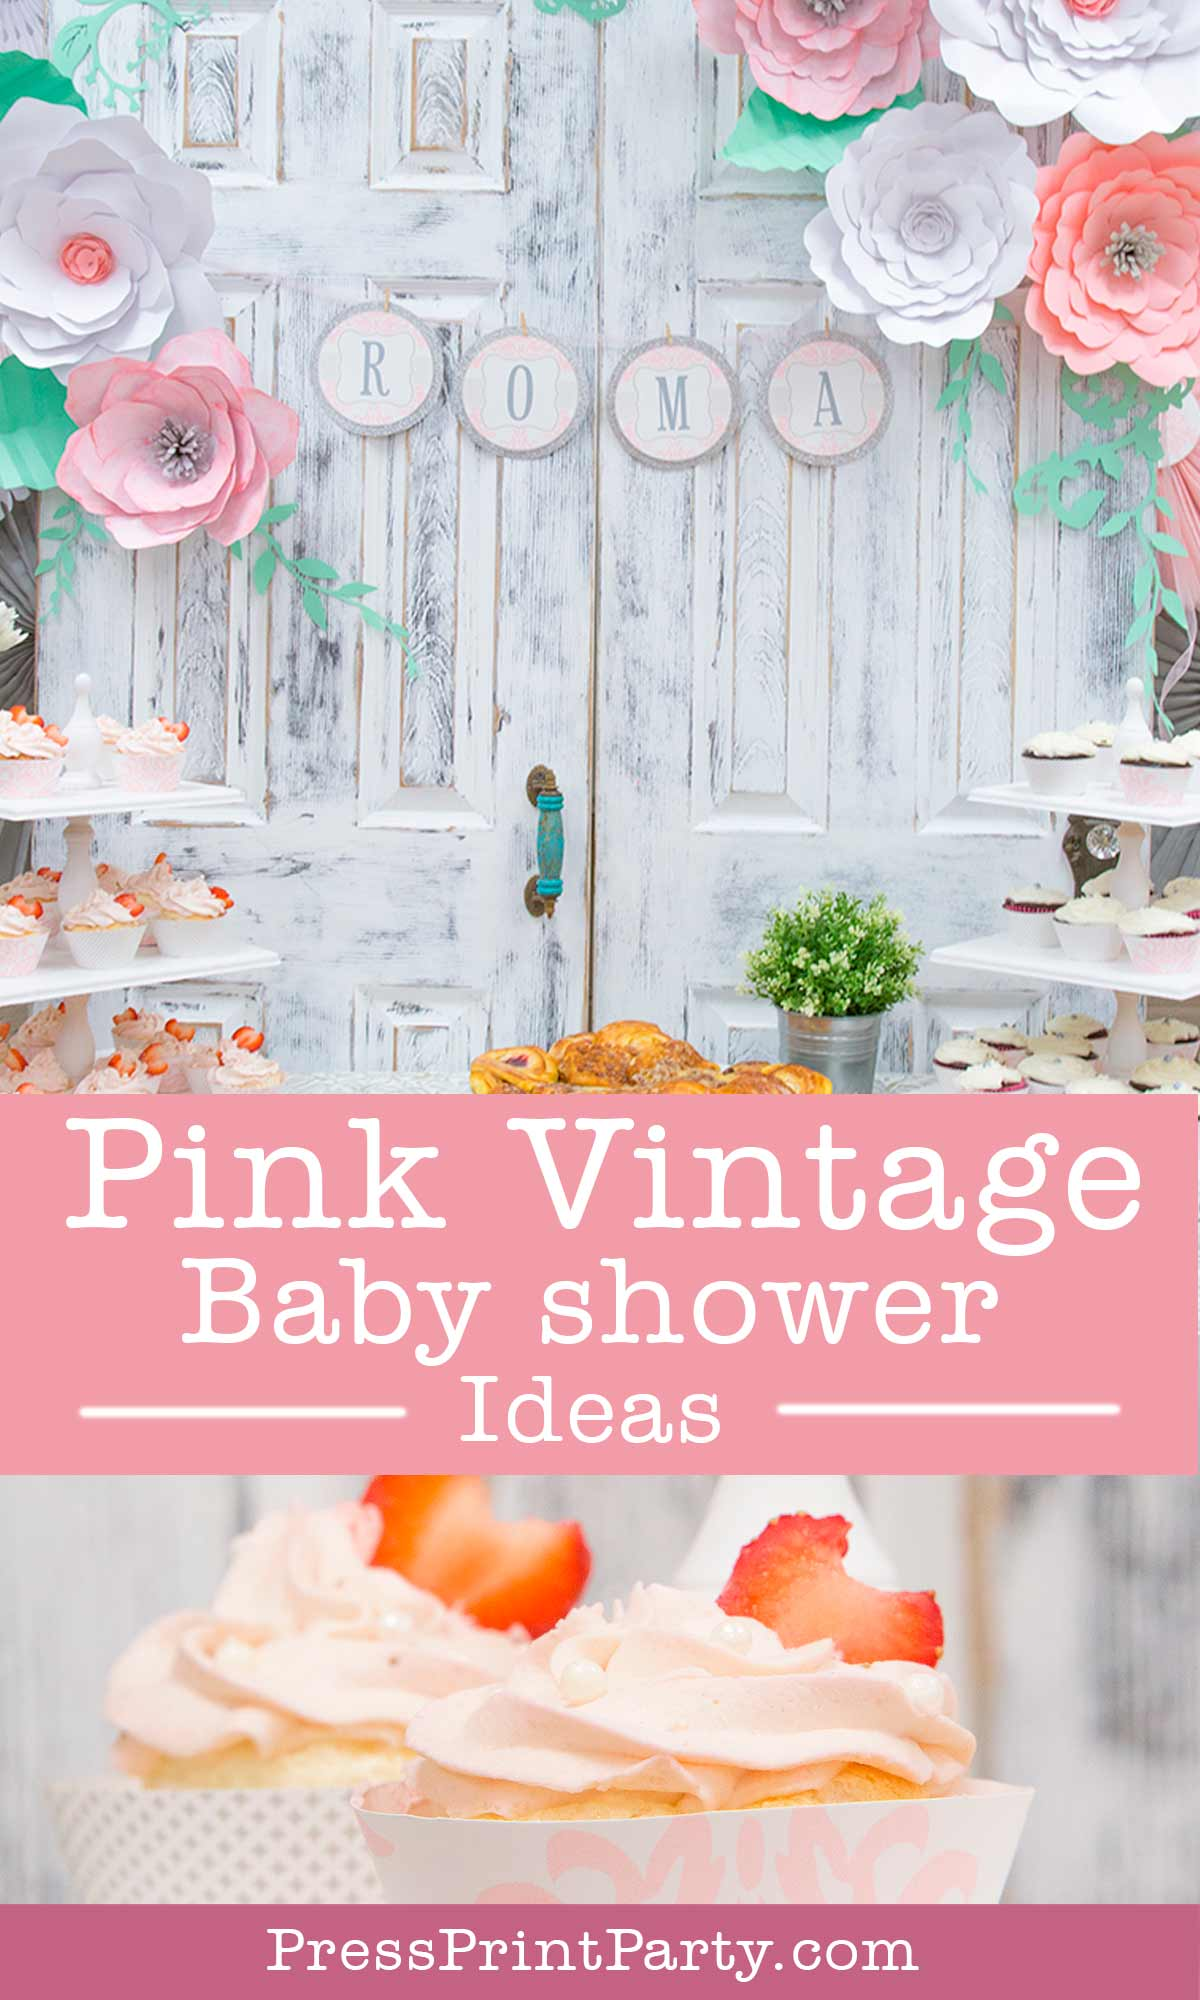 Pink vintage baby shower rustic baby shower ideas - Press Print Party!